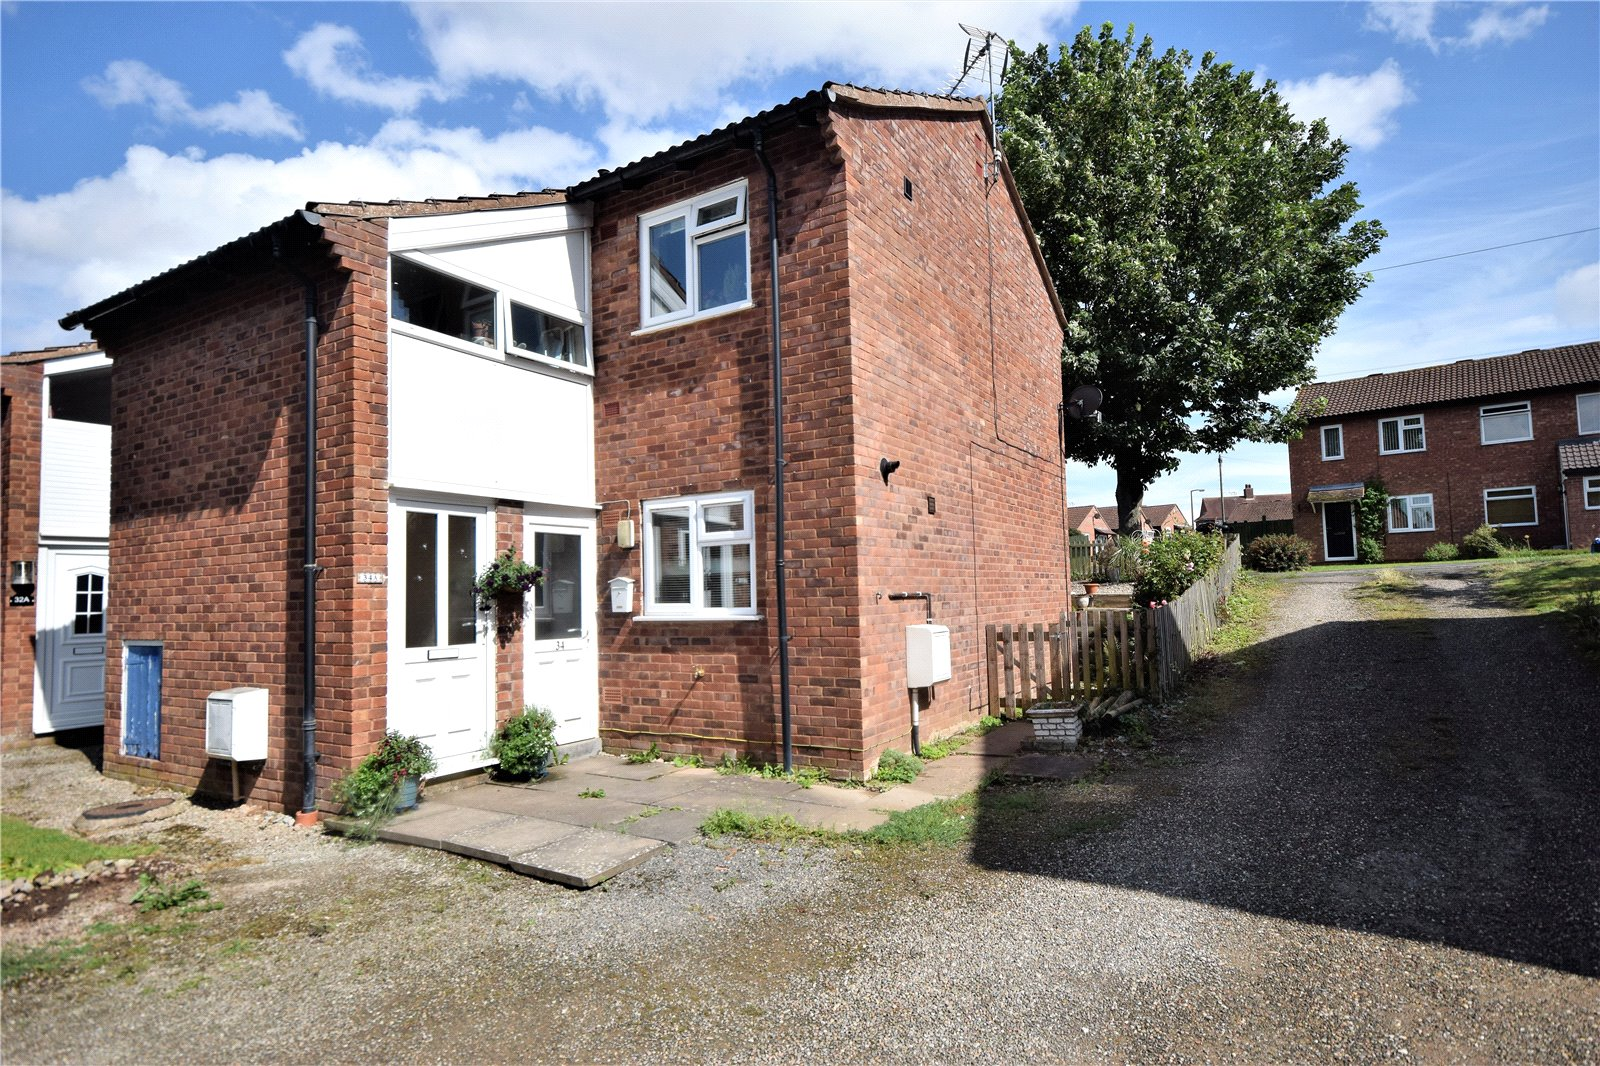 34 Hook Farm Road, Bridgnorth, Shropshire, WV16